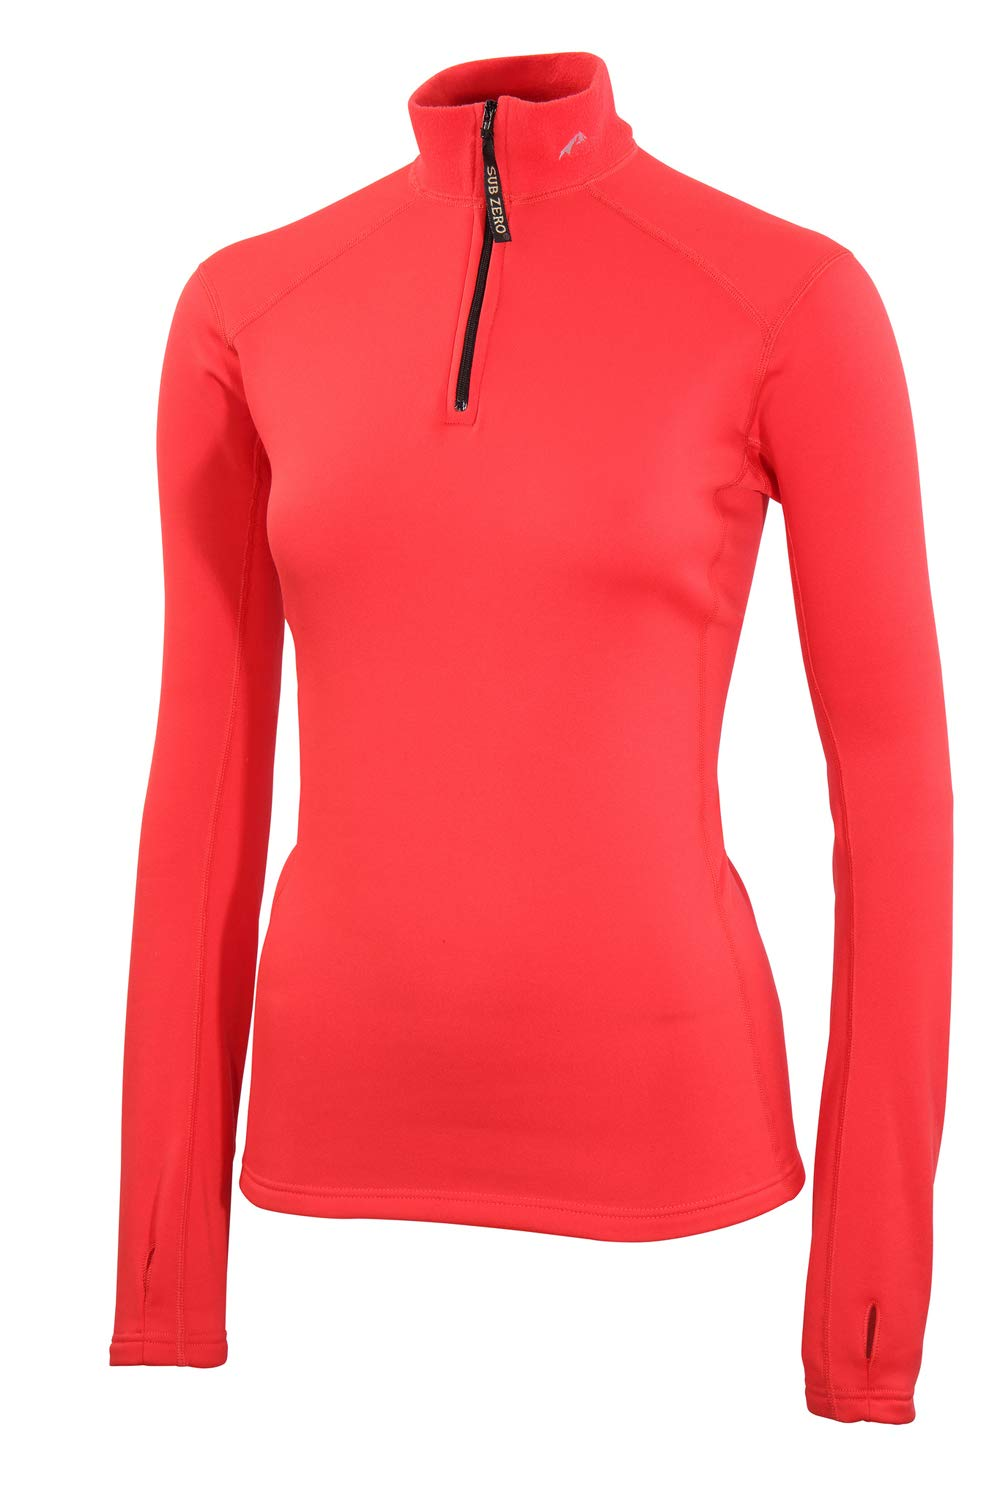 61nlRcIgtbL - SUB ZERO Womens Factor 2 Insulating Winter Mid Layer Thermal Underwear Zip Neck Turtle Long Sleeve Top